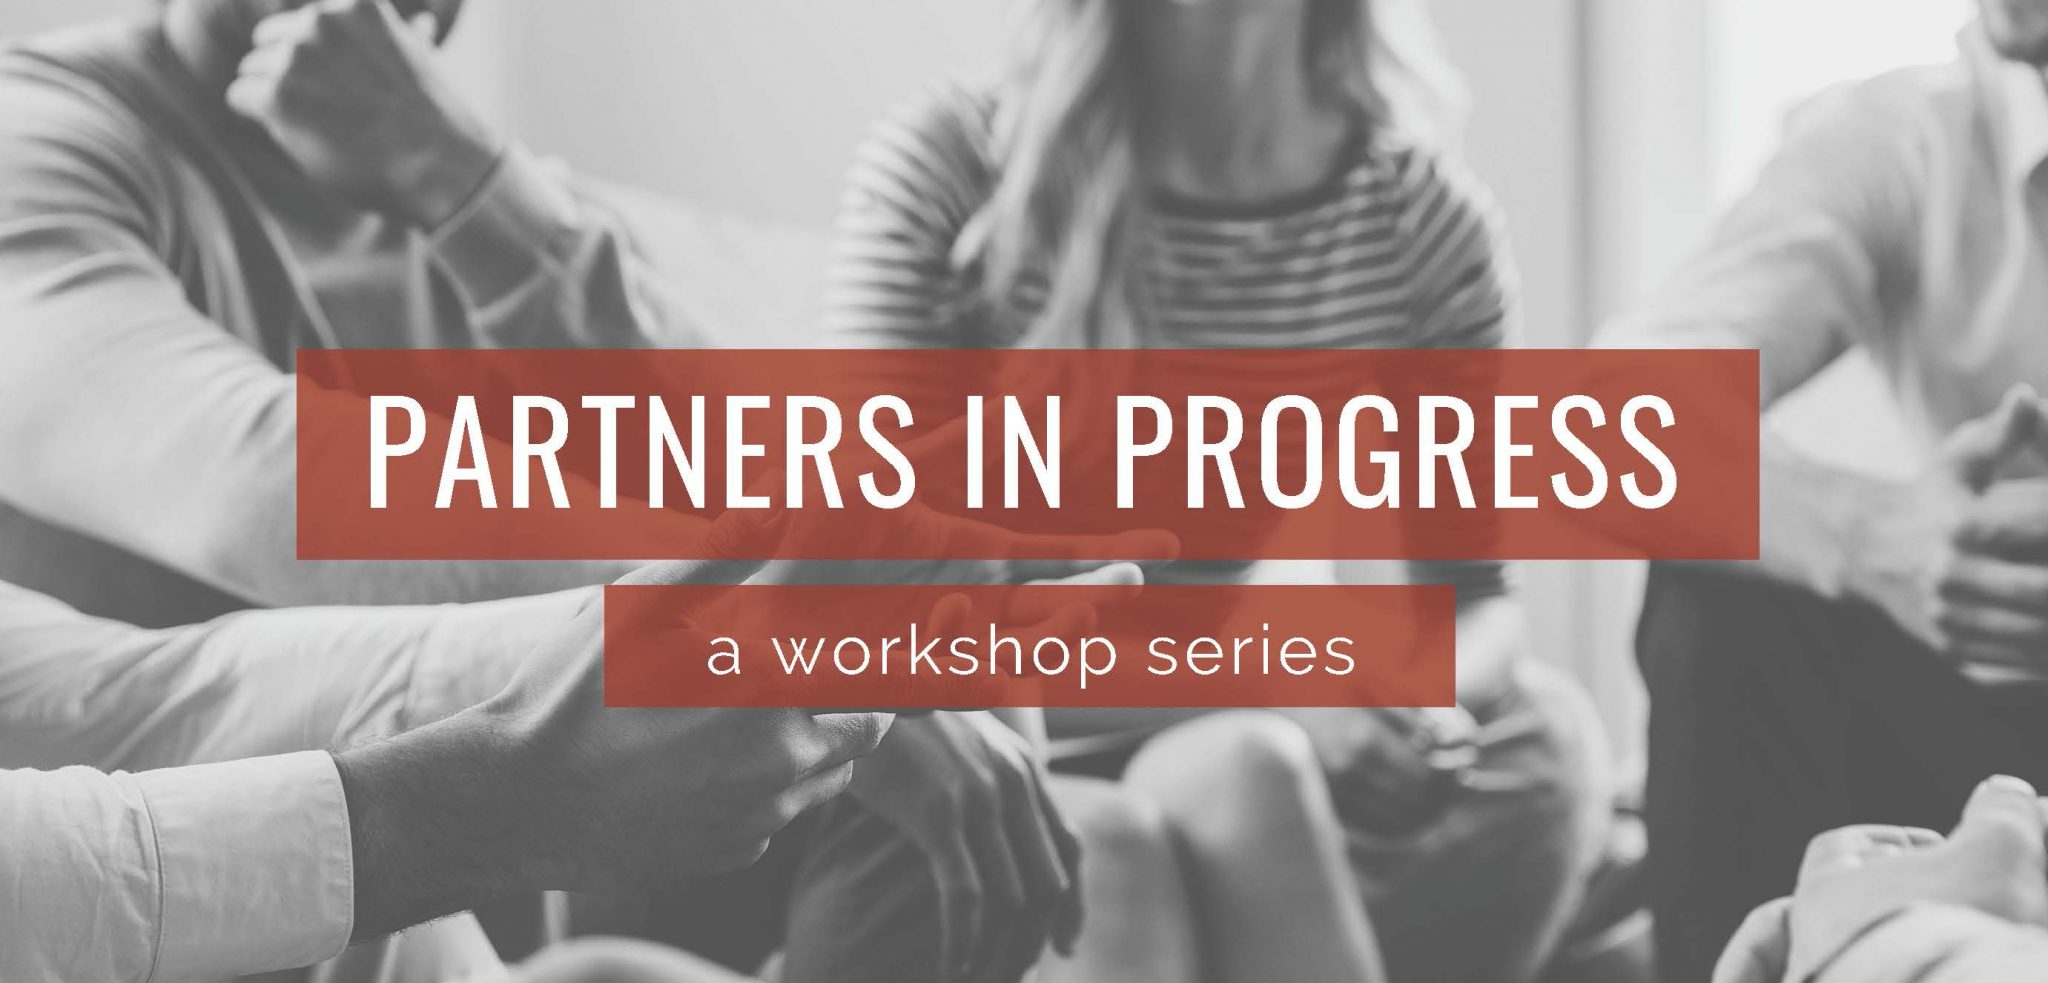 Link to Partners in Progress workshop information